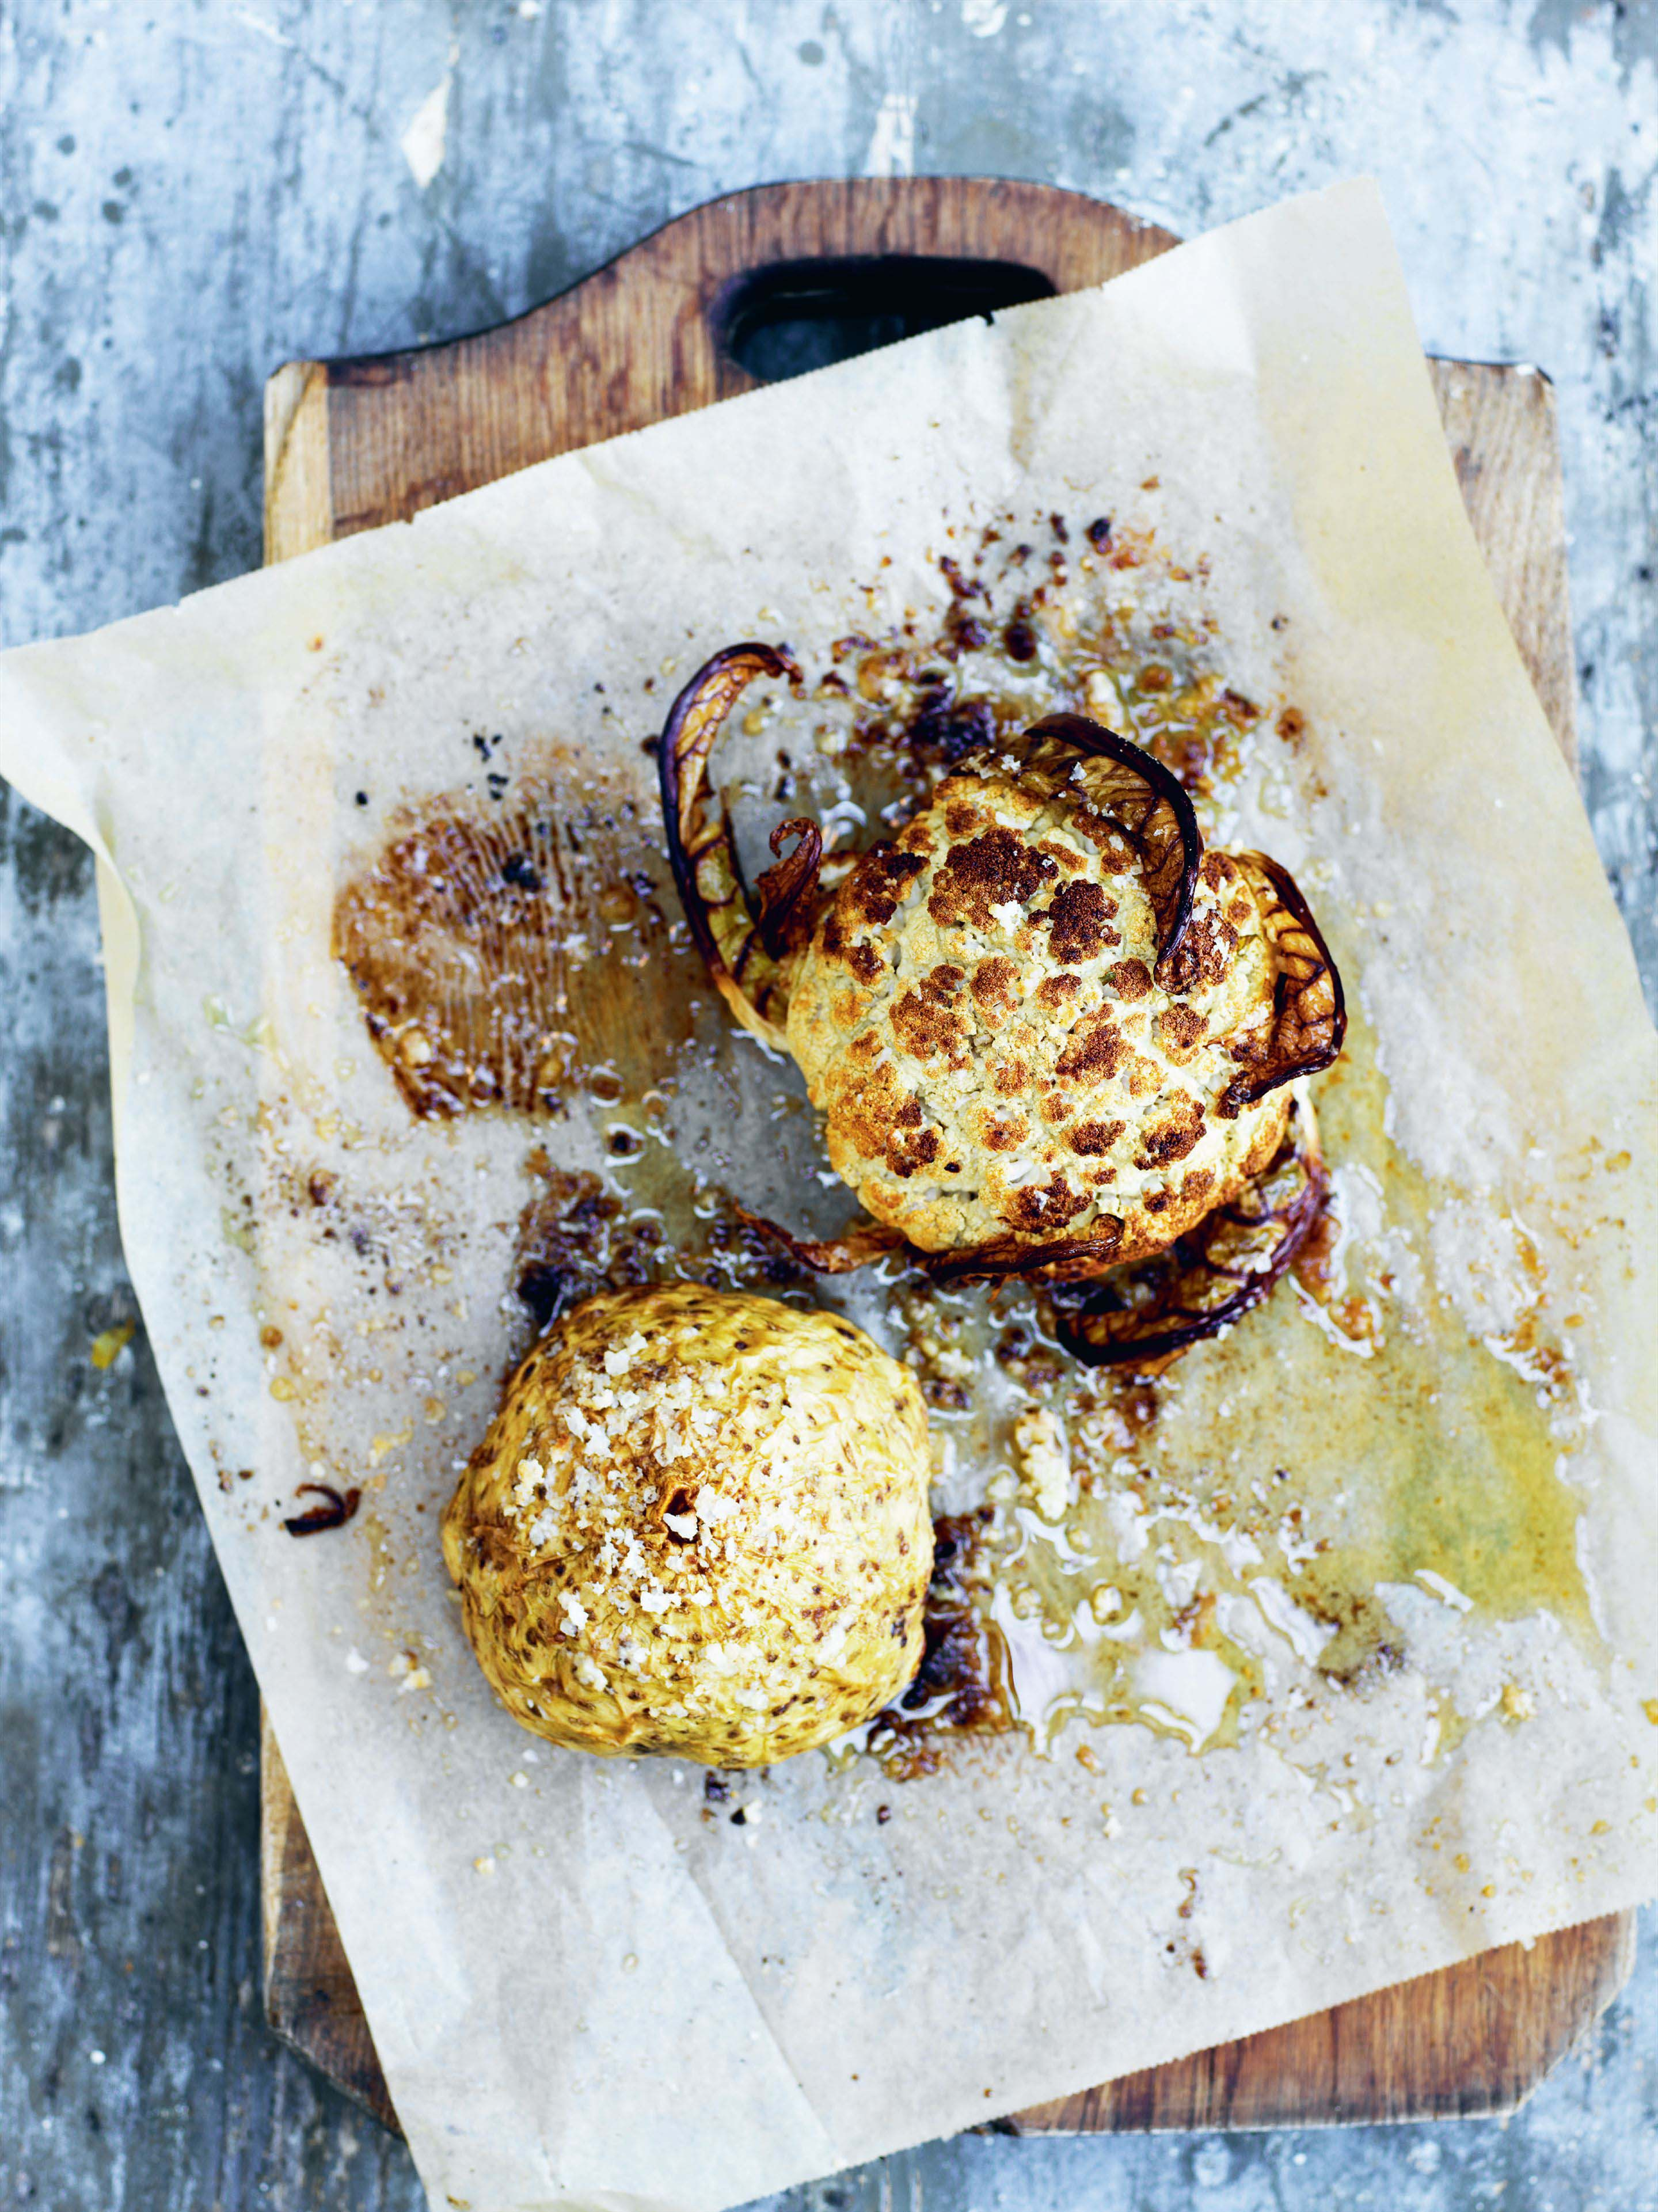 Whole baked celeriac and cauliflower